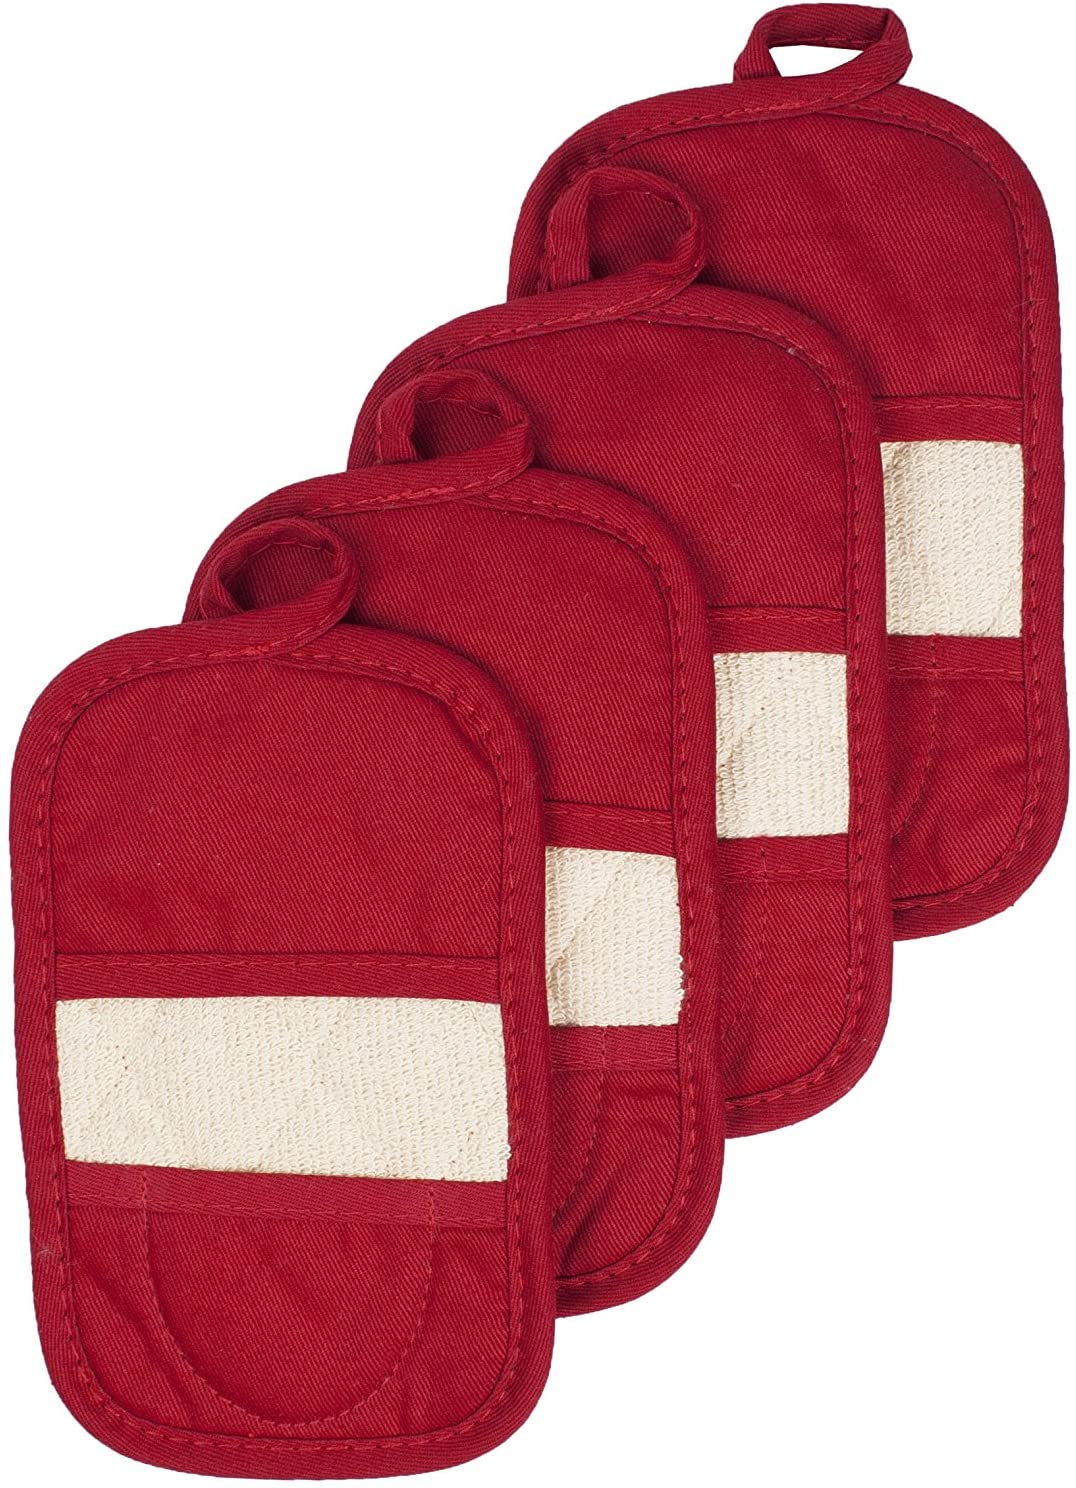 Ritz Royale Collection Dual-Function Hot Pads and Pot Holders Terry Mitz Cotton